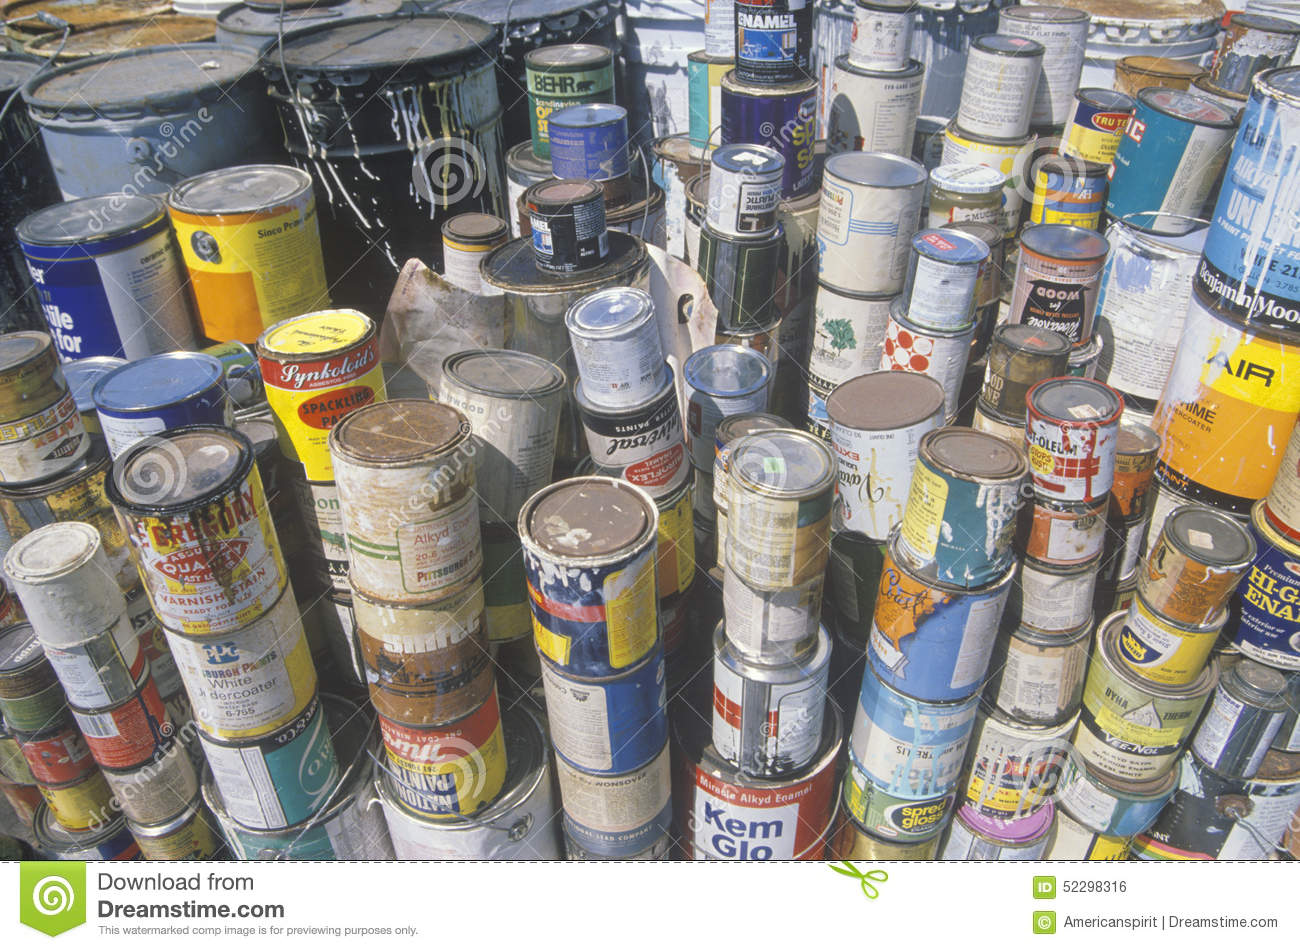 stacks of toxic paint cans waiting for disposal at a